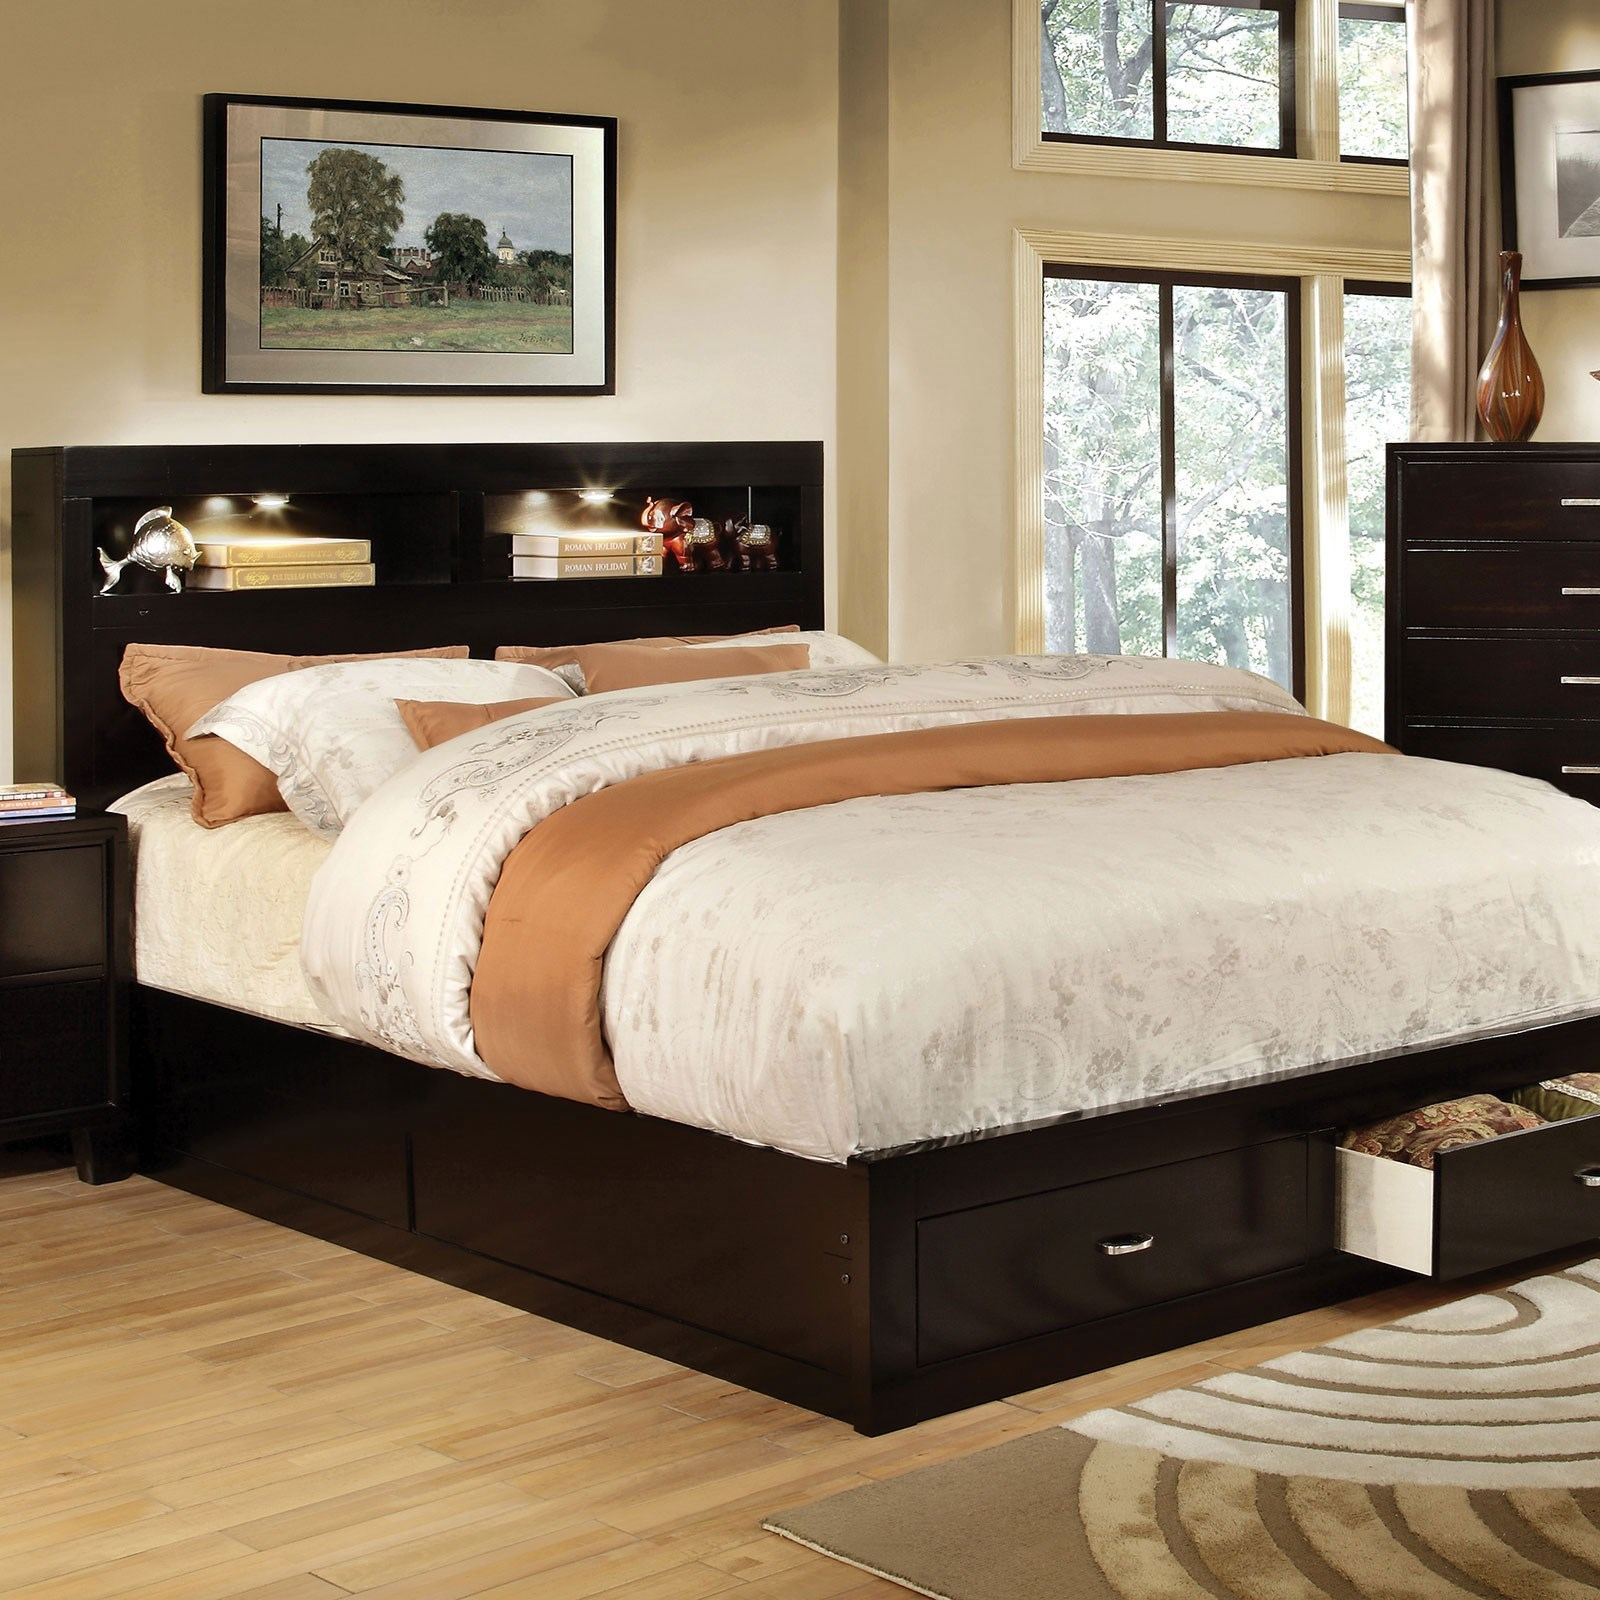 Bookcase Bed Gerico Ii Contemporary Queen Bookcase Bed With Footboard Storage By America At Del Sol Furniture